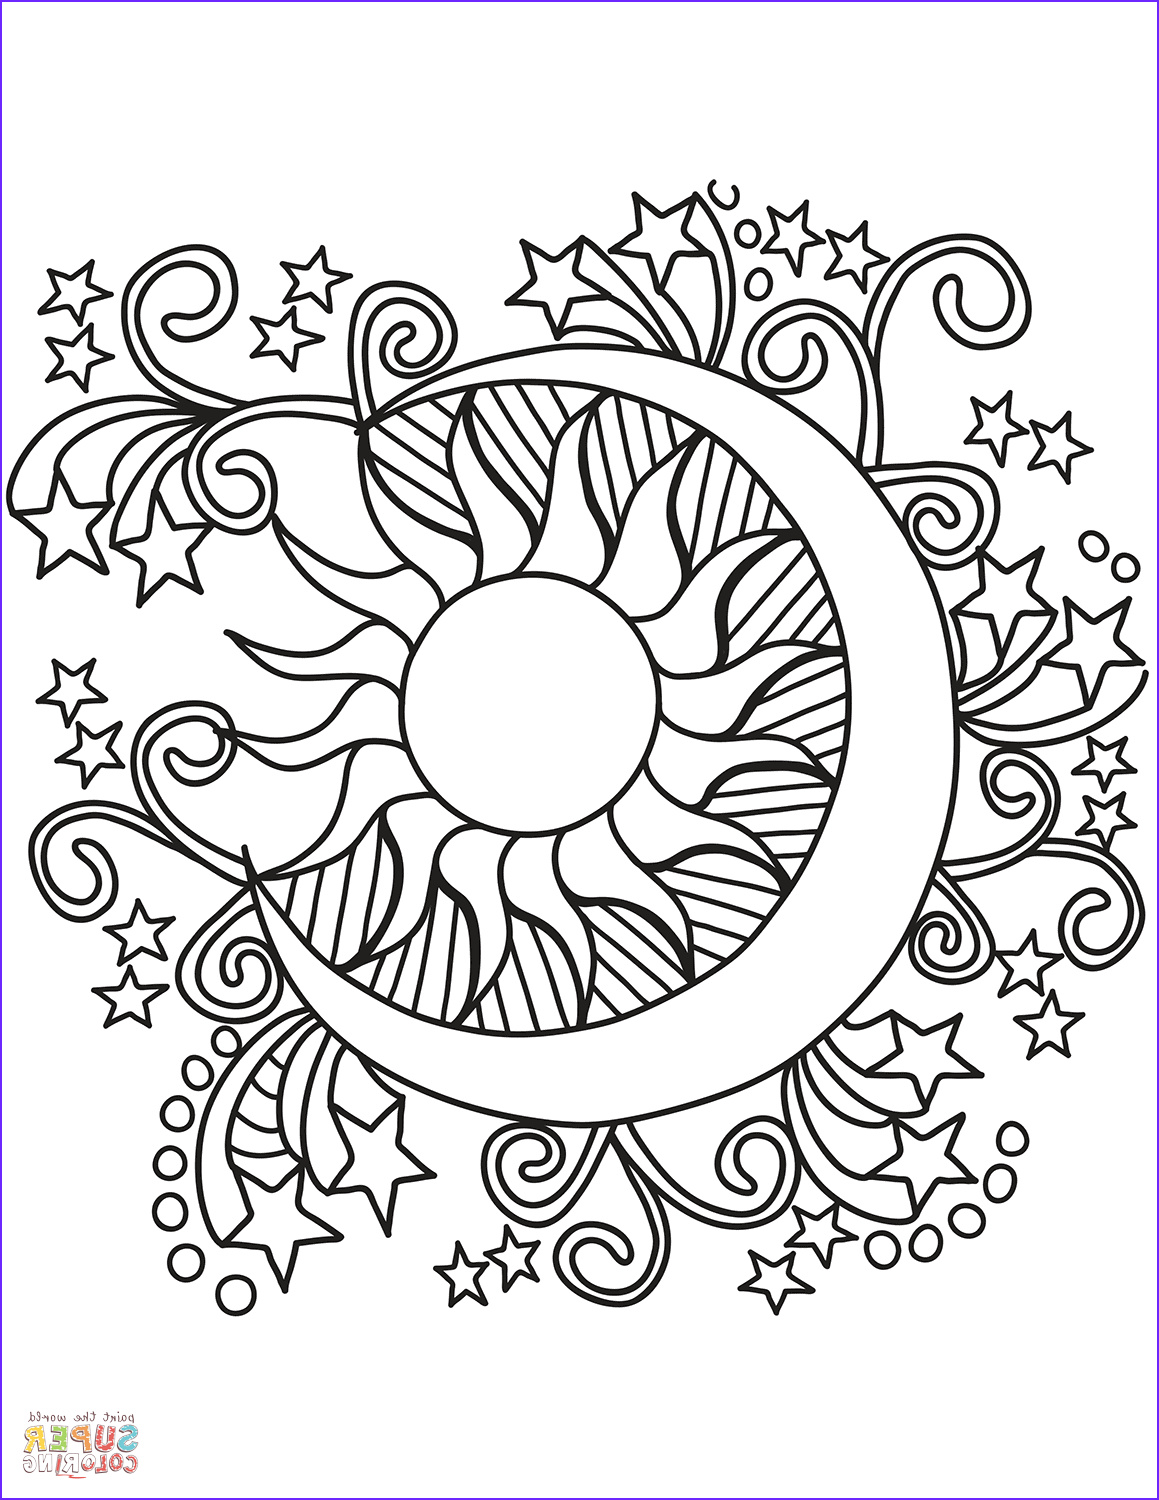 Moon Coloring Pages New Gallery Pop Art Sun Moon and Stars Coloring Page